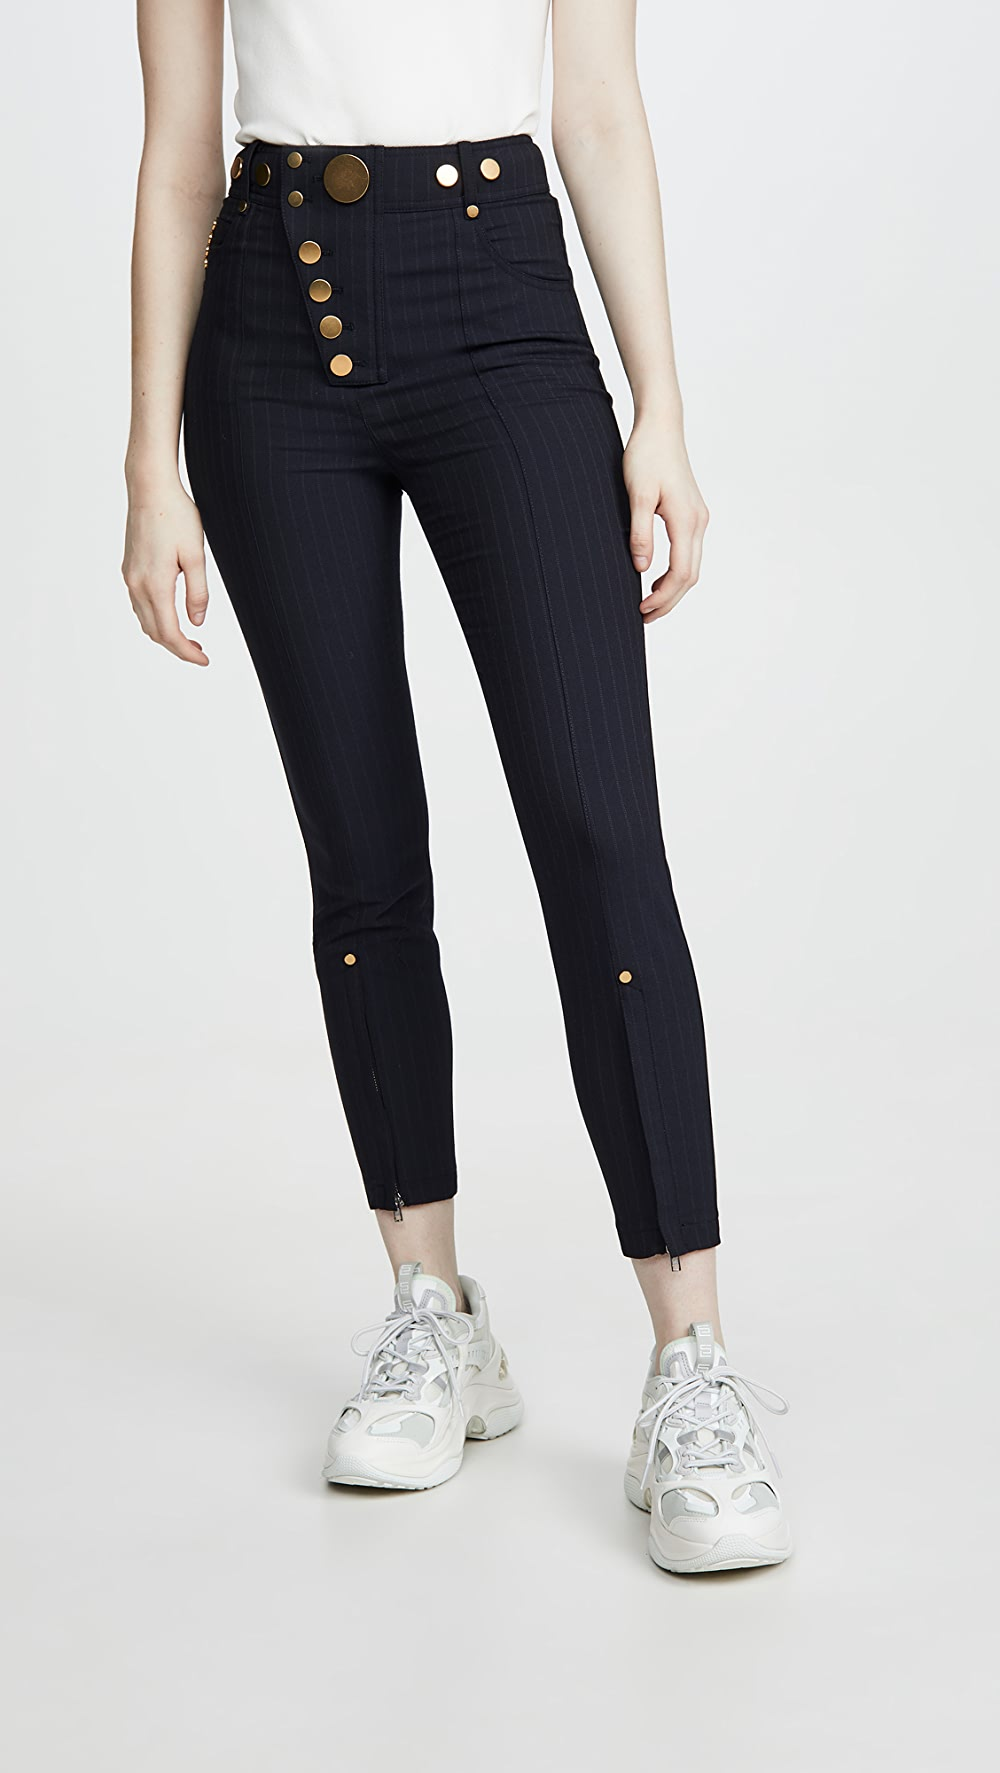 Amiable Alexander Wang - High Waisted Snap Front Leggings Catalogues Will Be Sent Upon Request